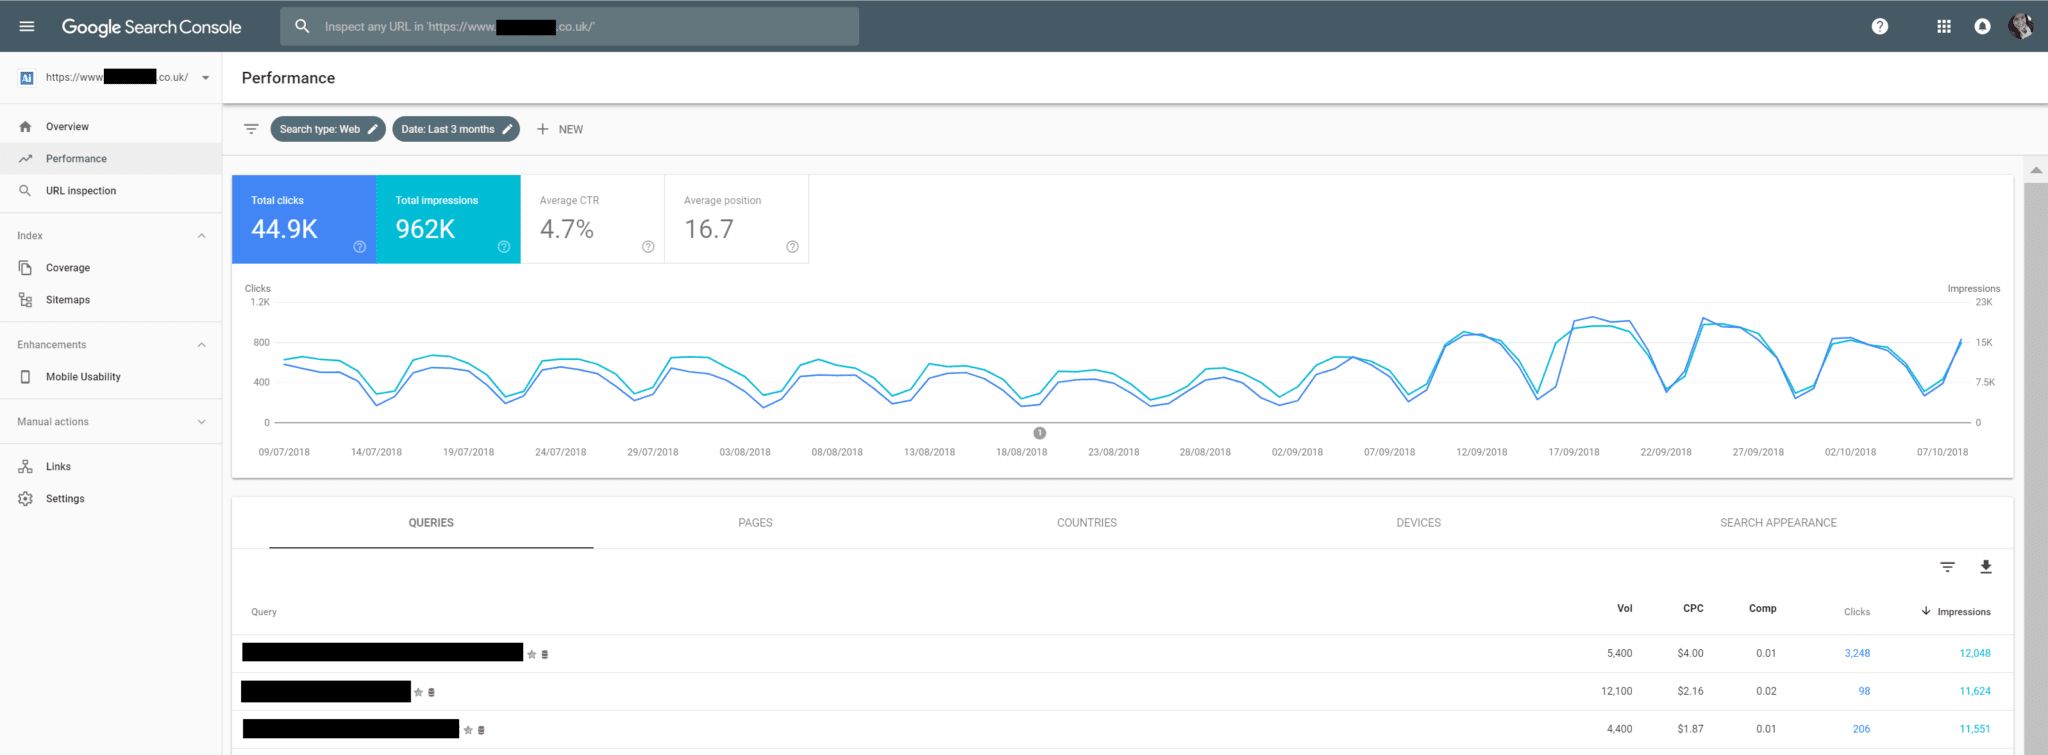 Google Search Console - Performance Report - Impressions